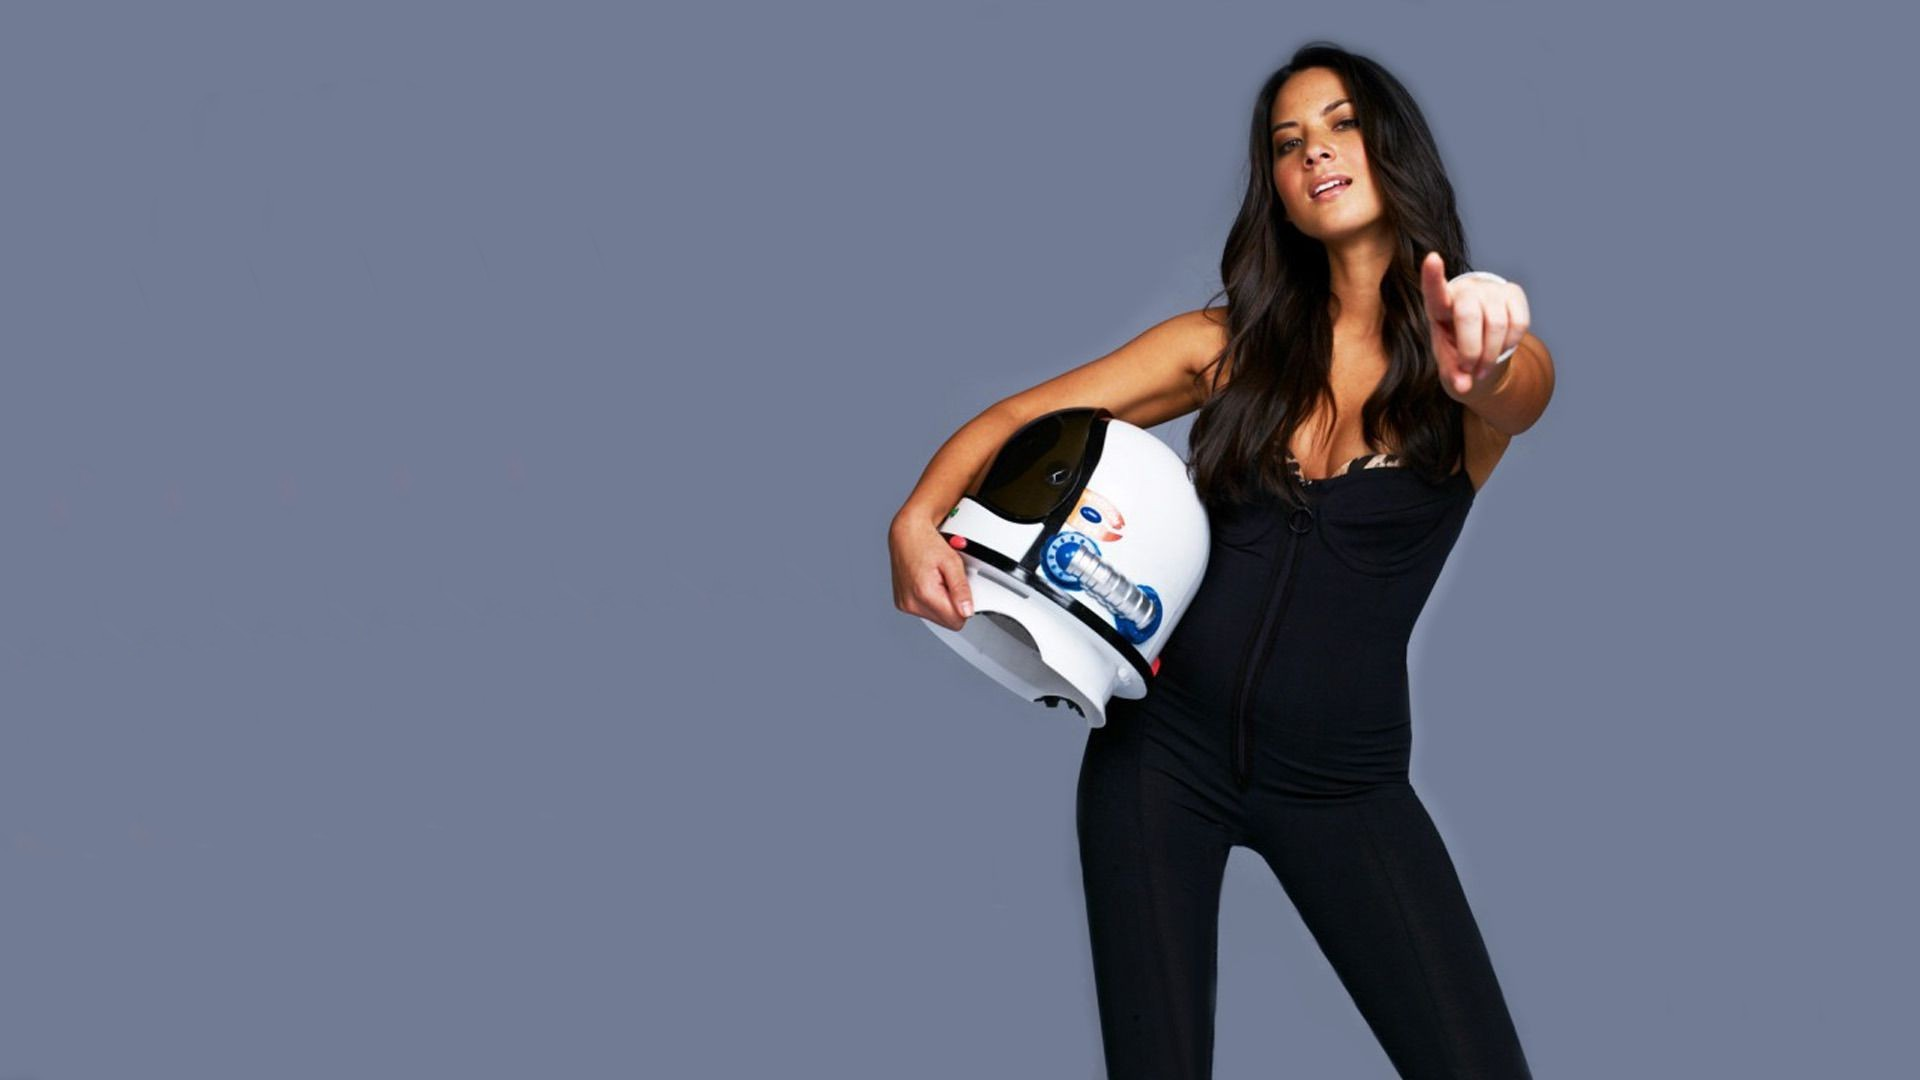 olivia munn30 1920x1080 wallpapers - photo #27